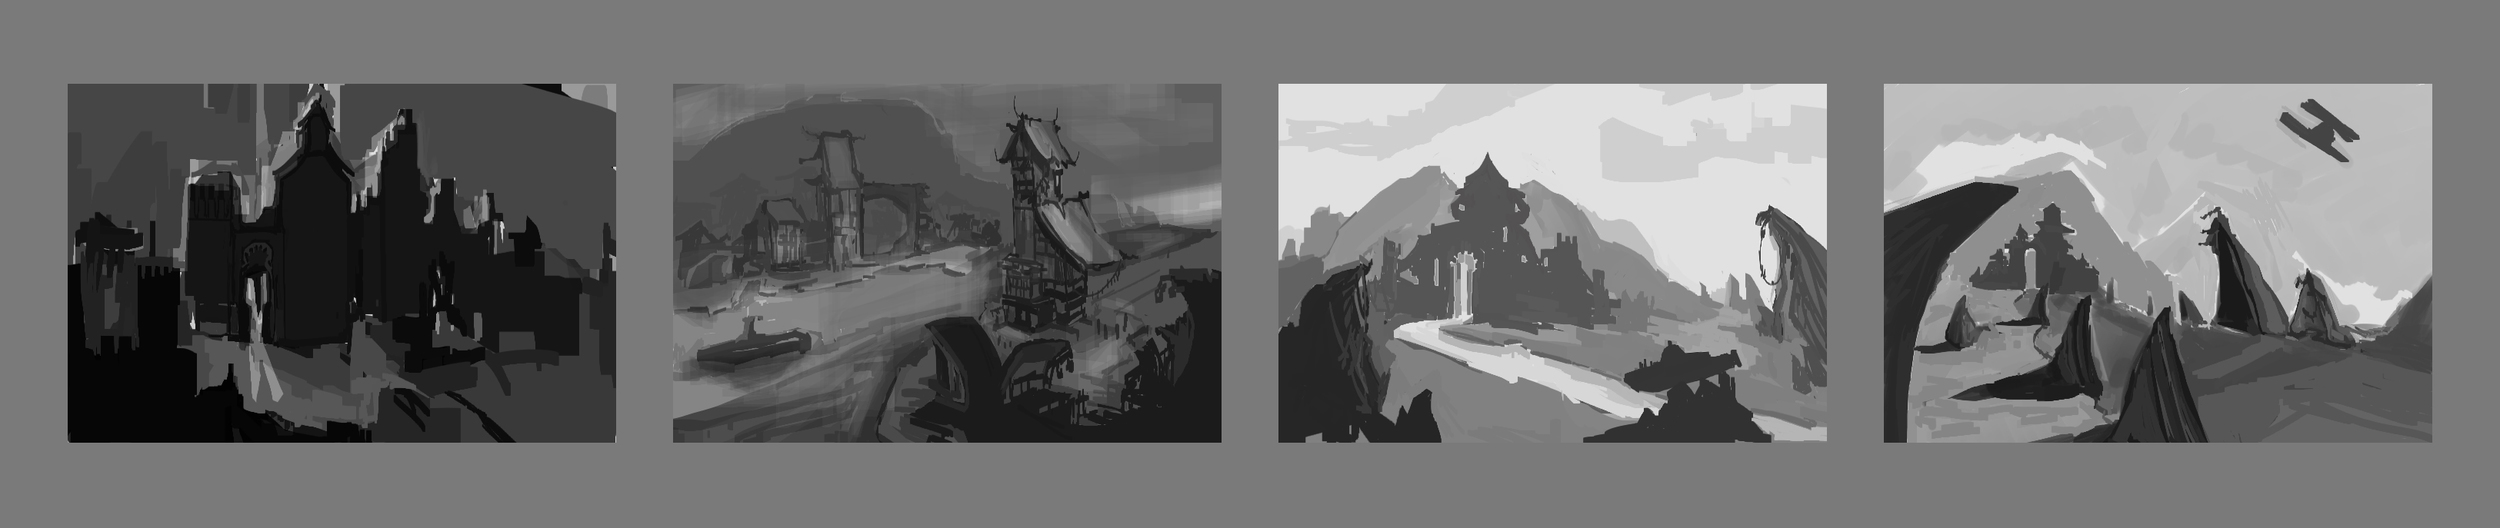 Thumbnails-Exterior-Final.jpg